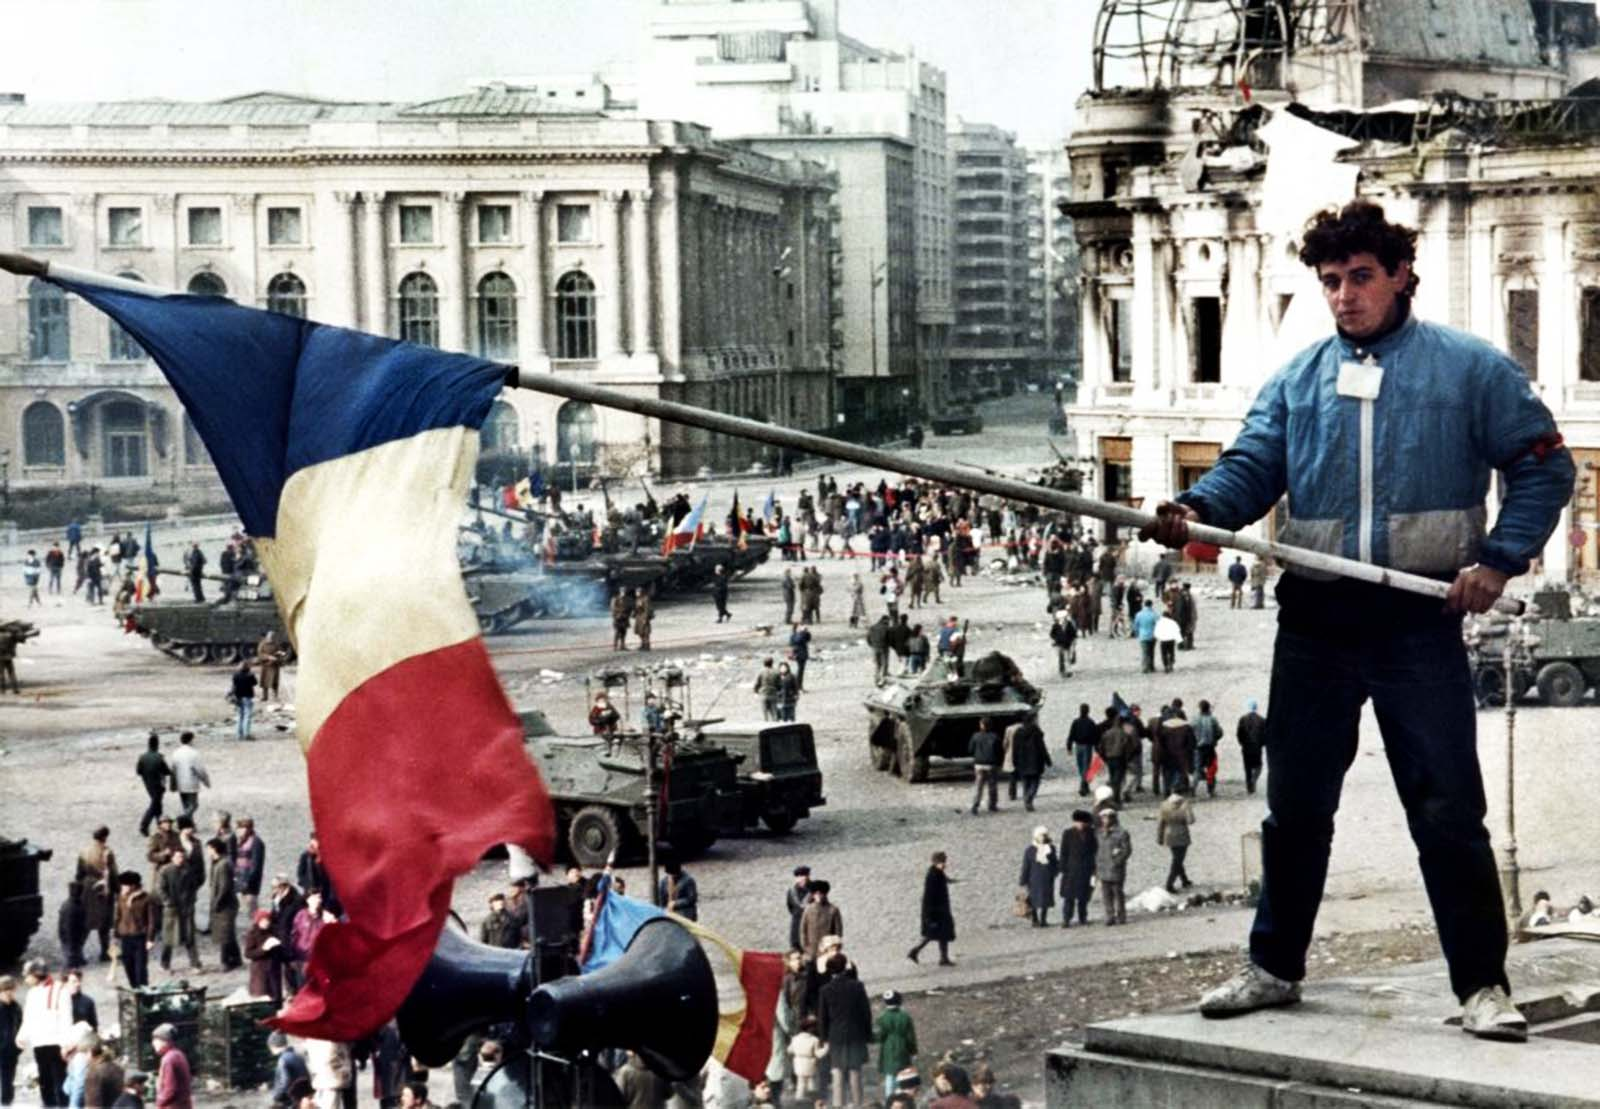 A young man waves a Romanian flag with the communist symbol cut out over Bucharest's Republic Square on 26 December 1989, the day after Ceausescu was shot.